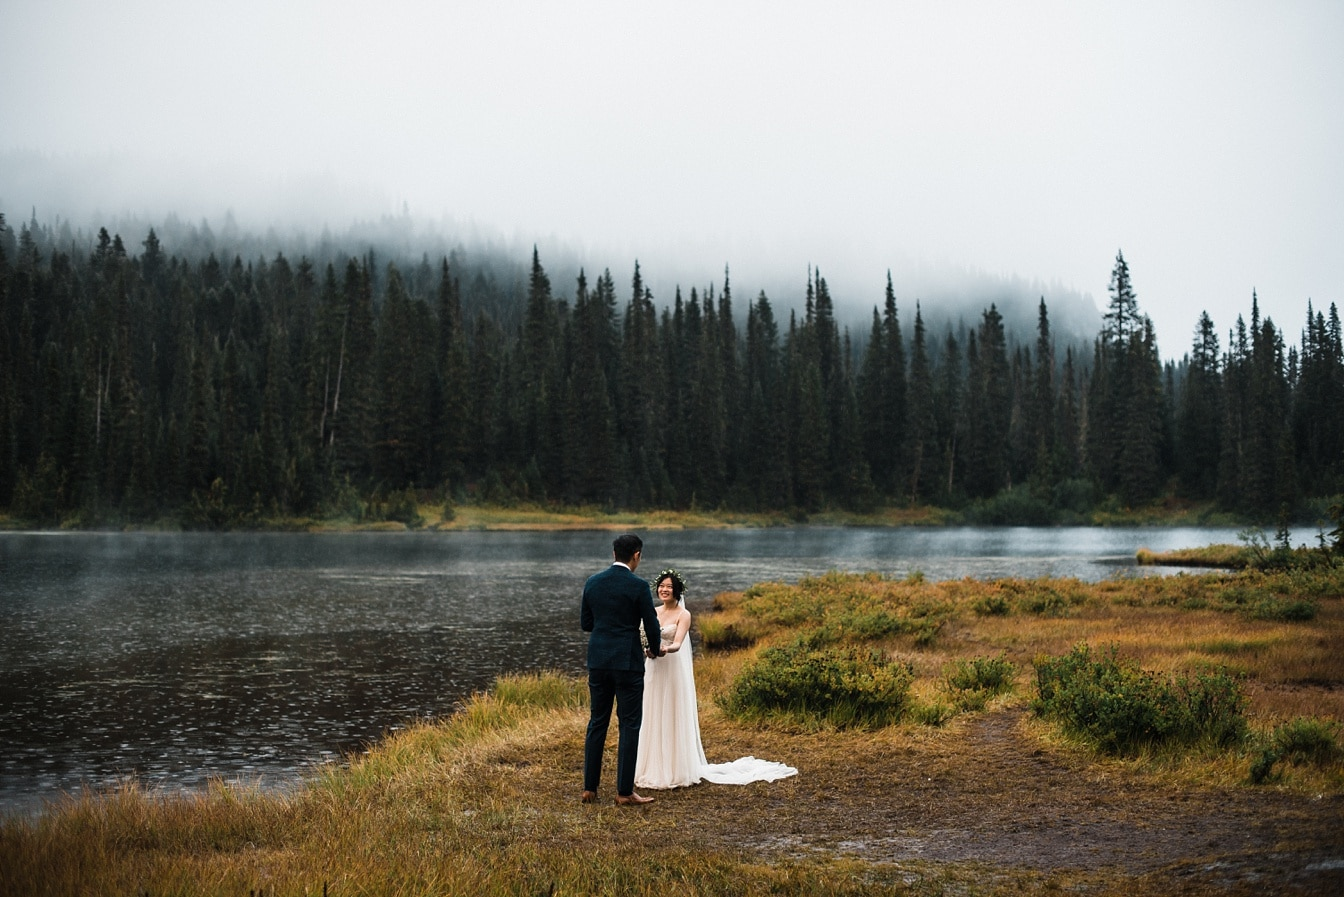 Moody PNW Elopement at Mount Rainier National Park in Washington